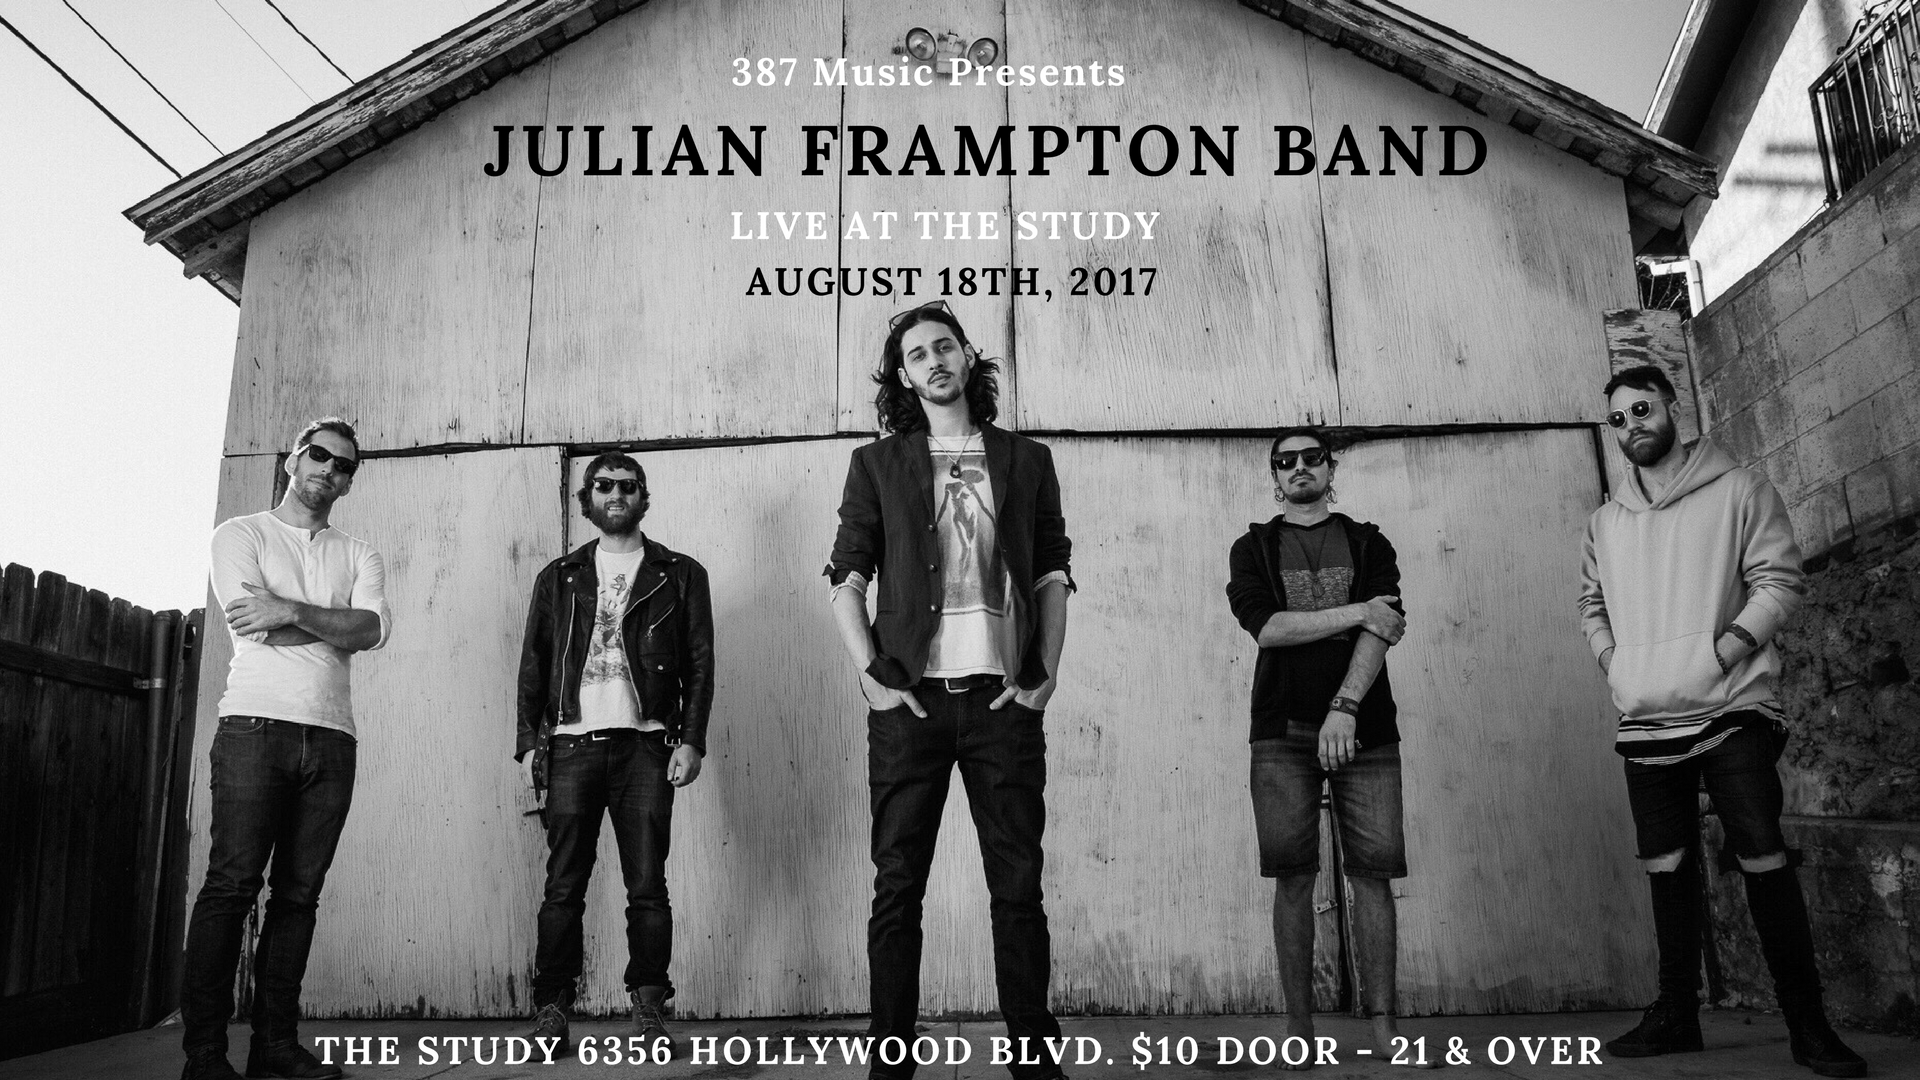 julian frampton band live at the study hollywood